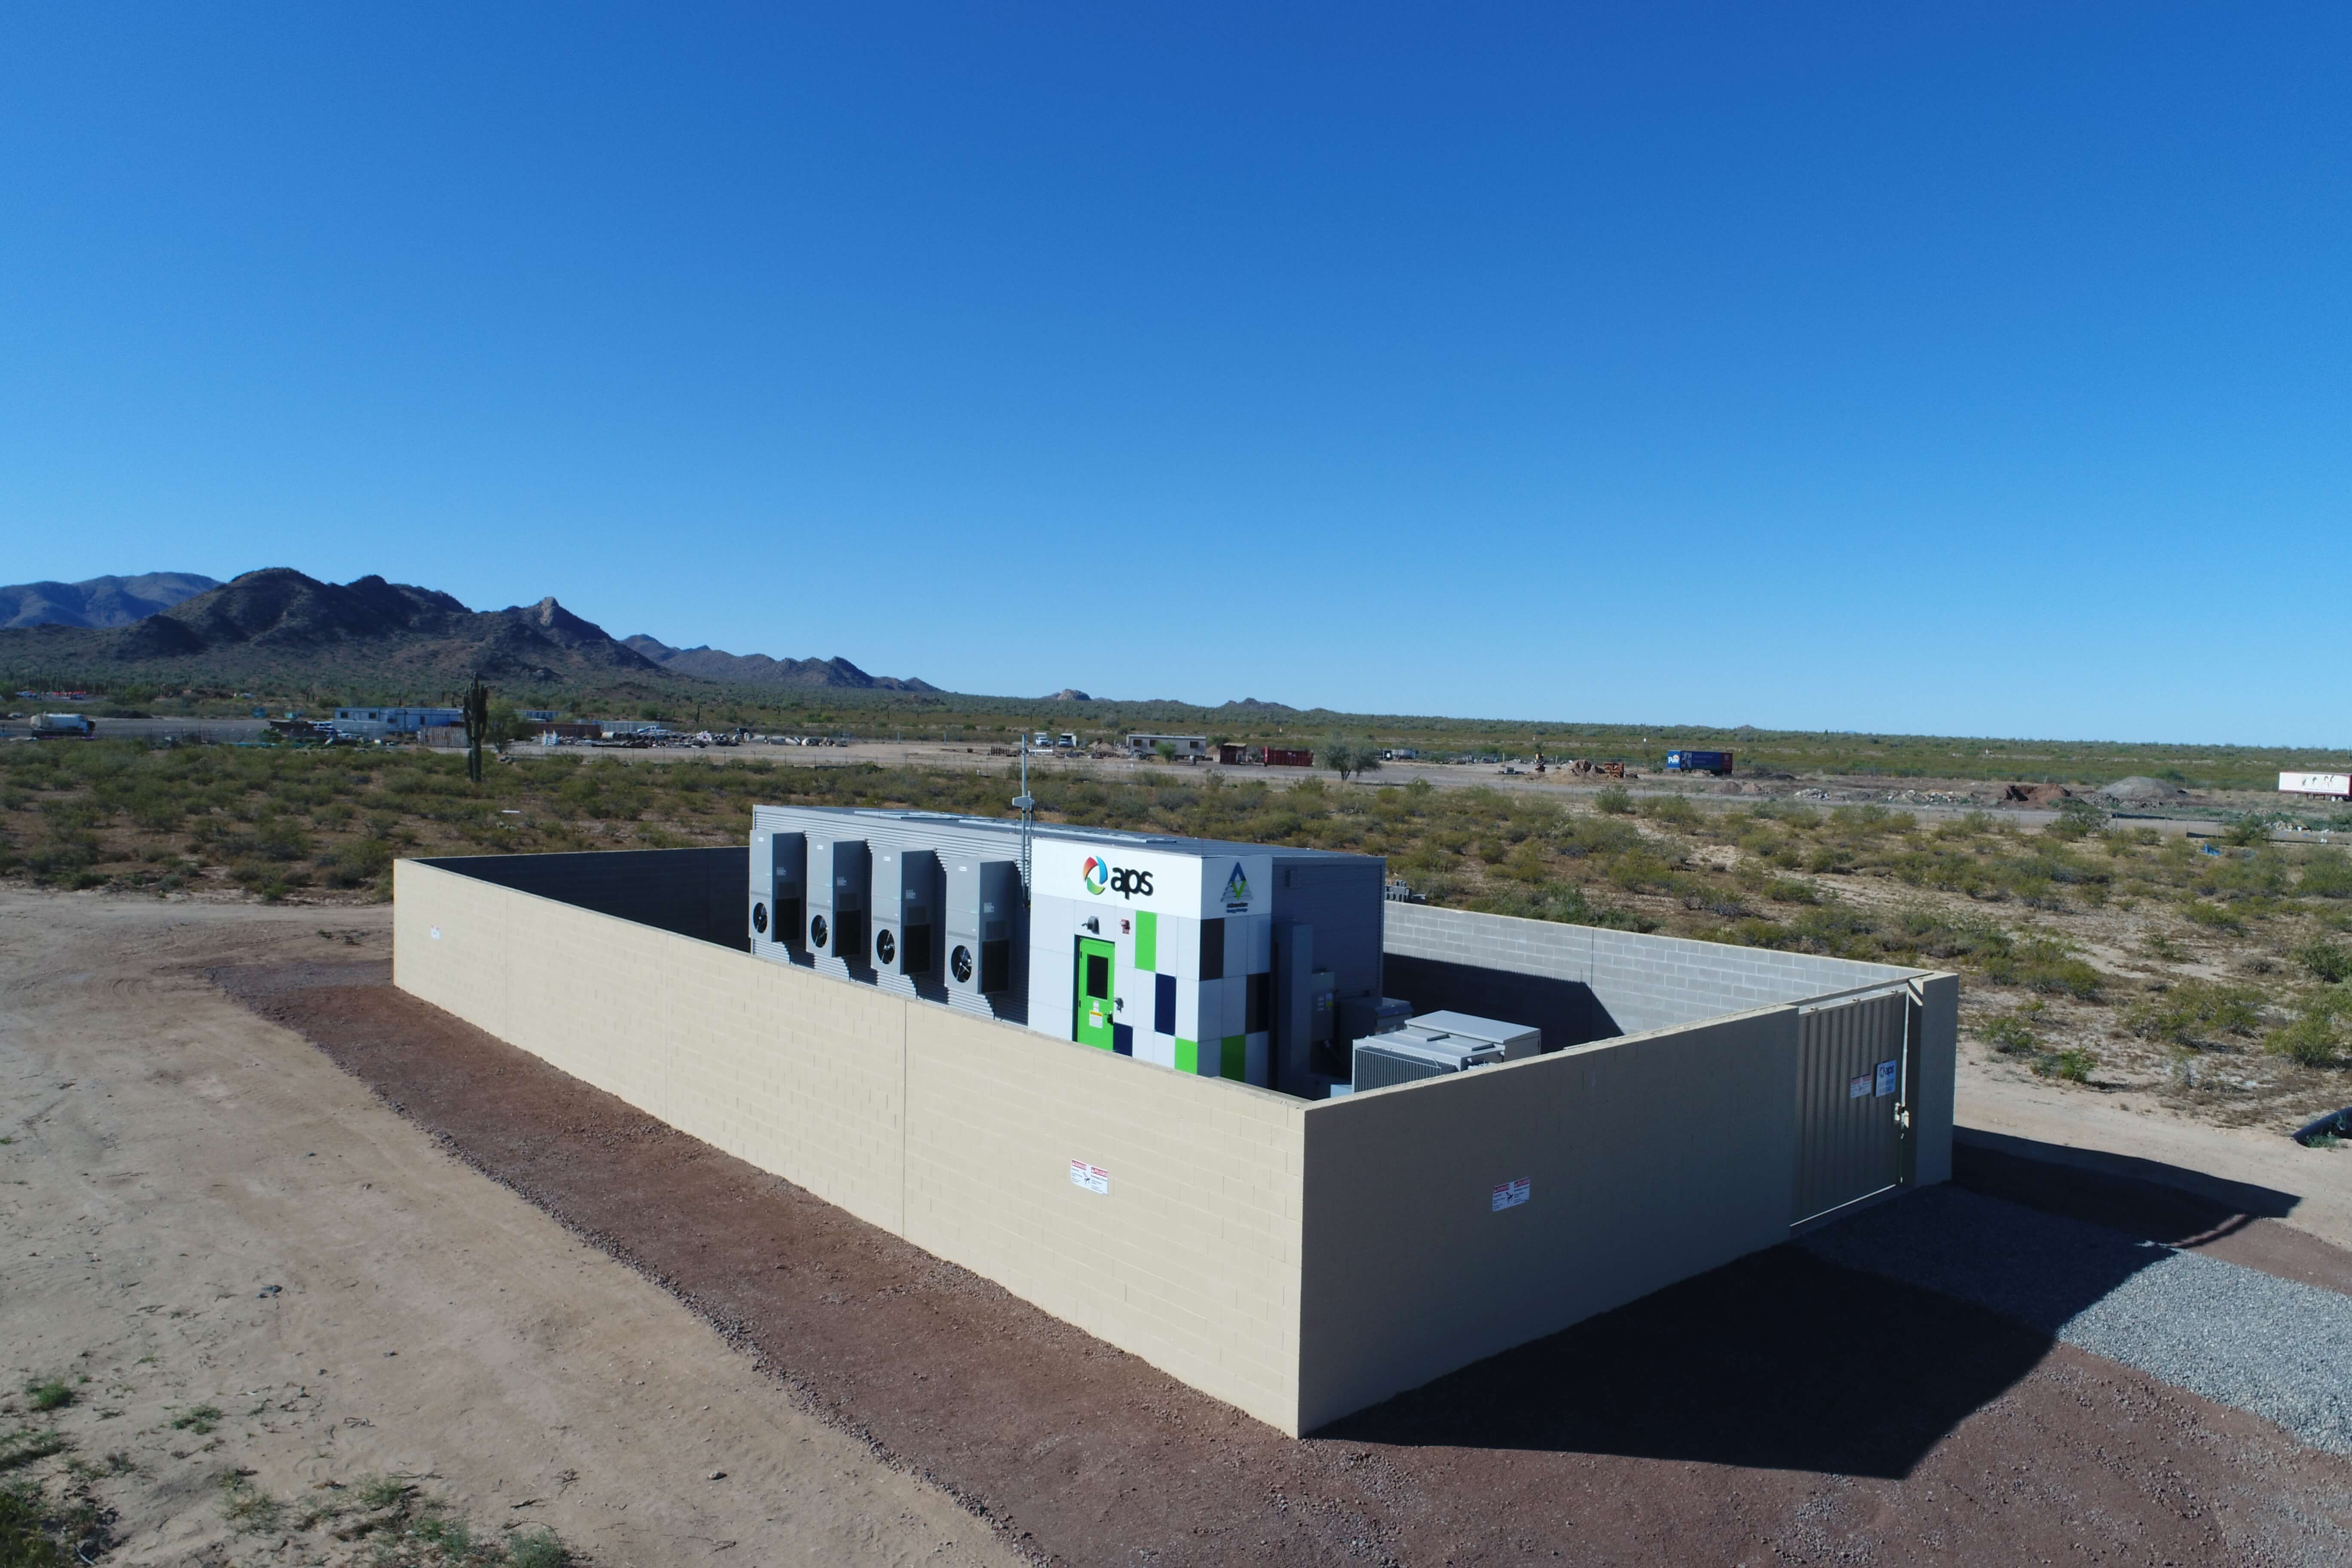 APS Utility APS Chooses Battery Storage Over Traditional T&D